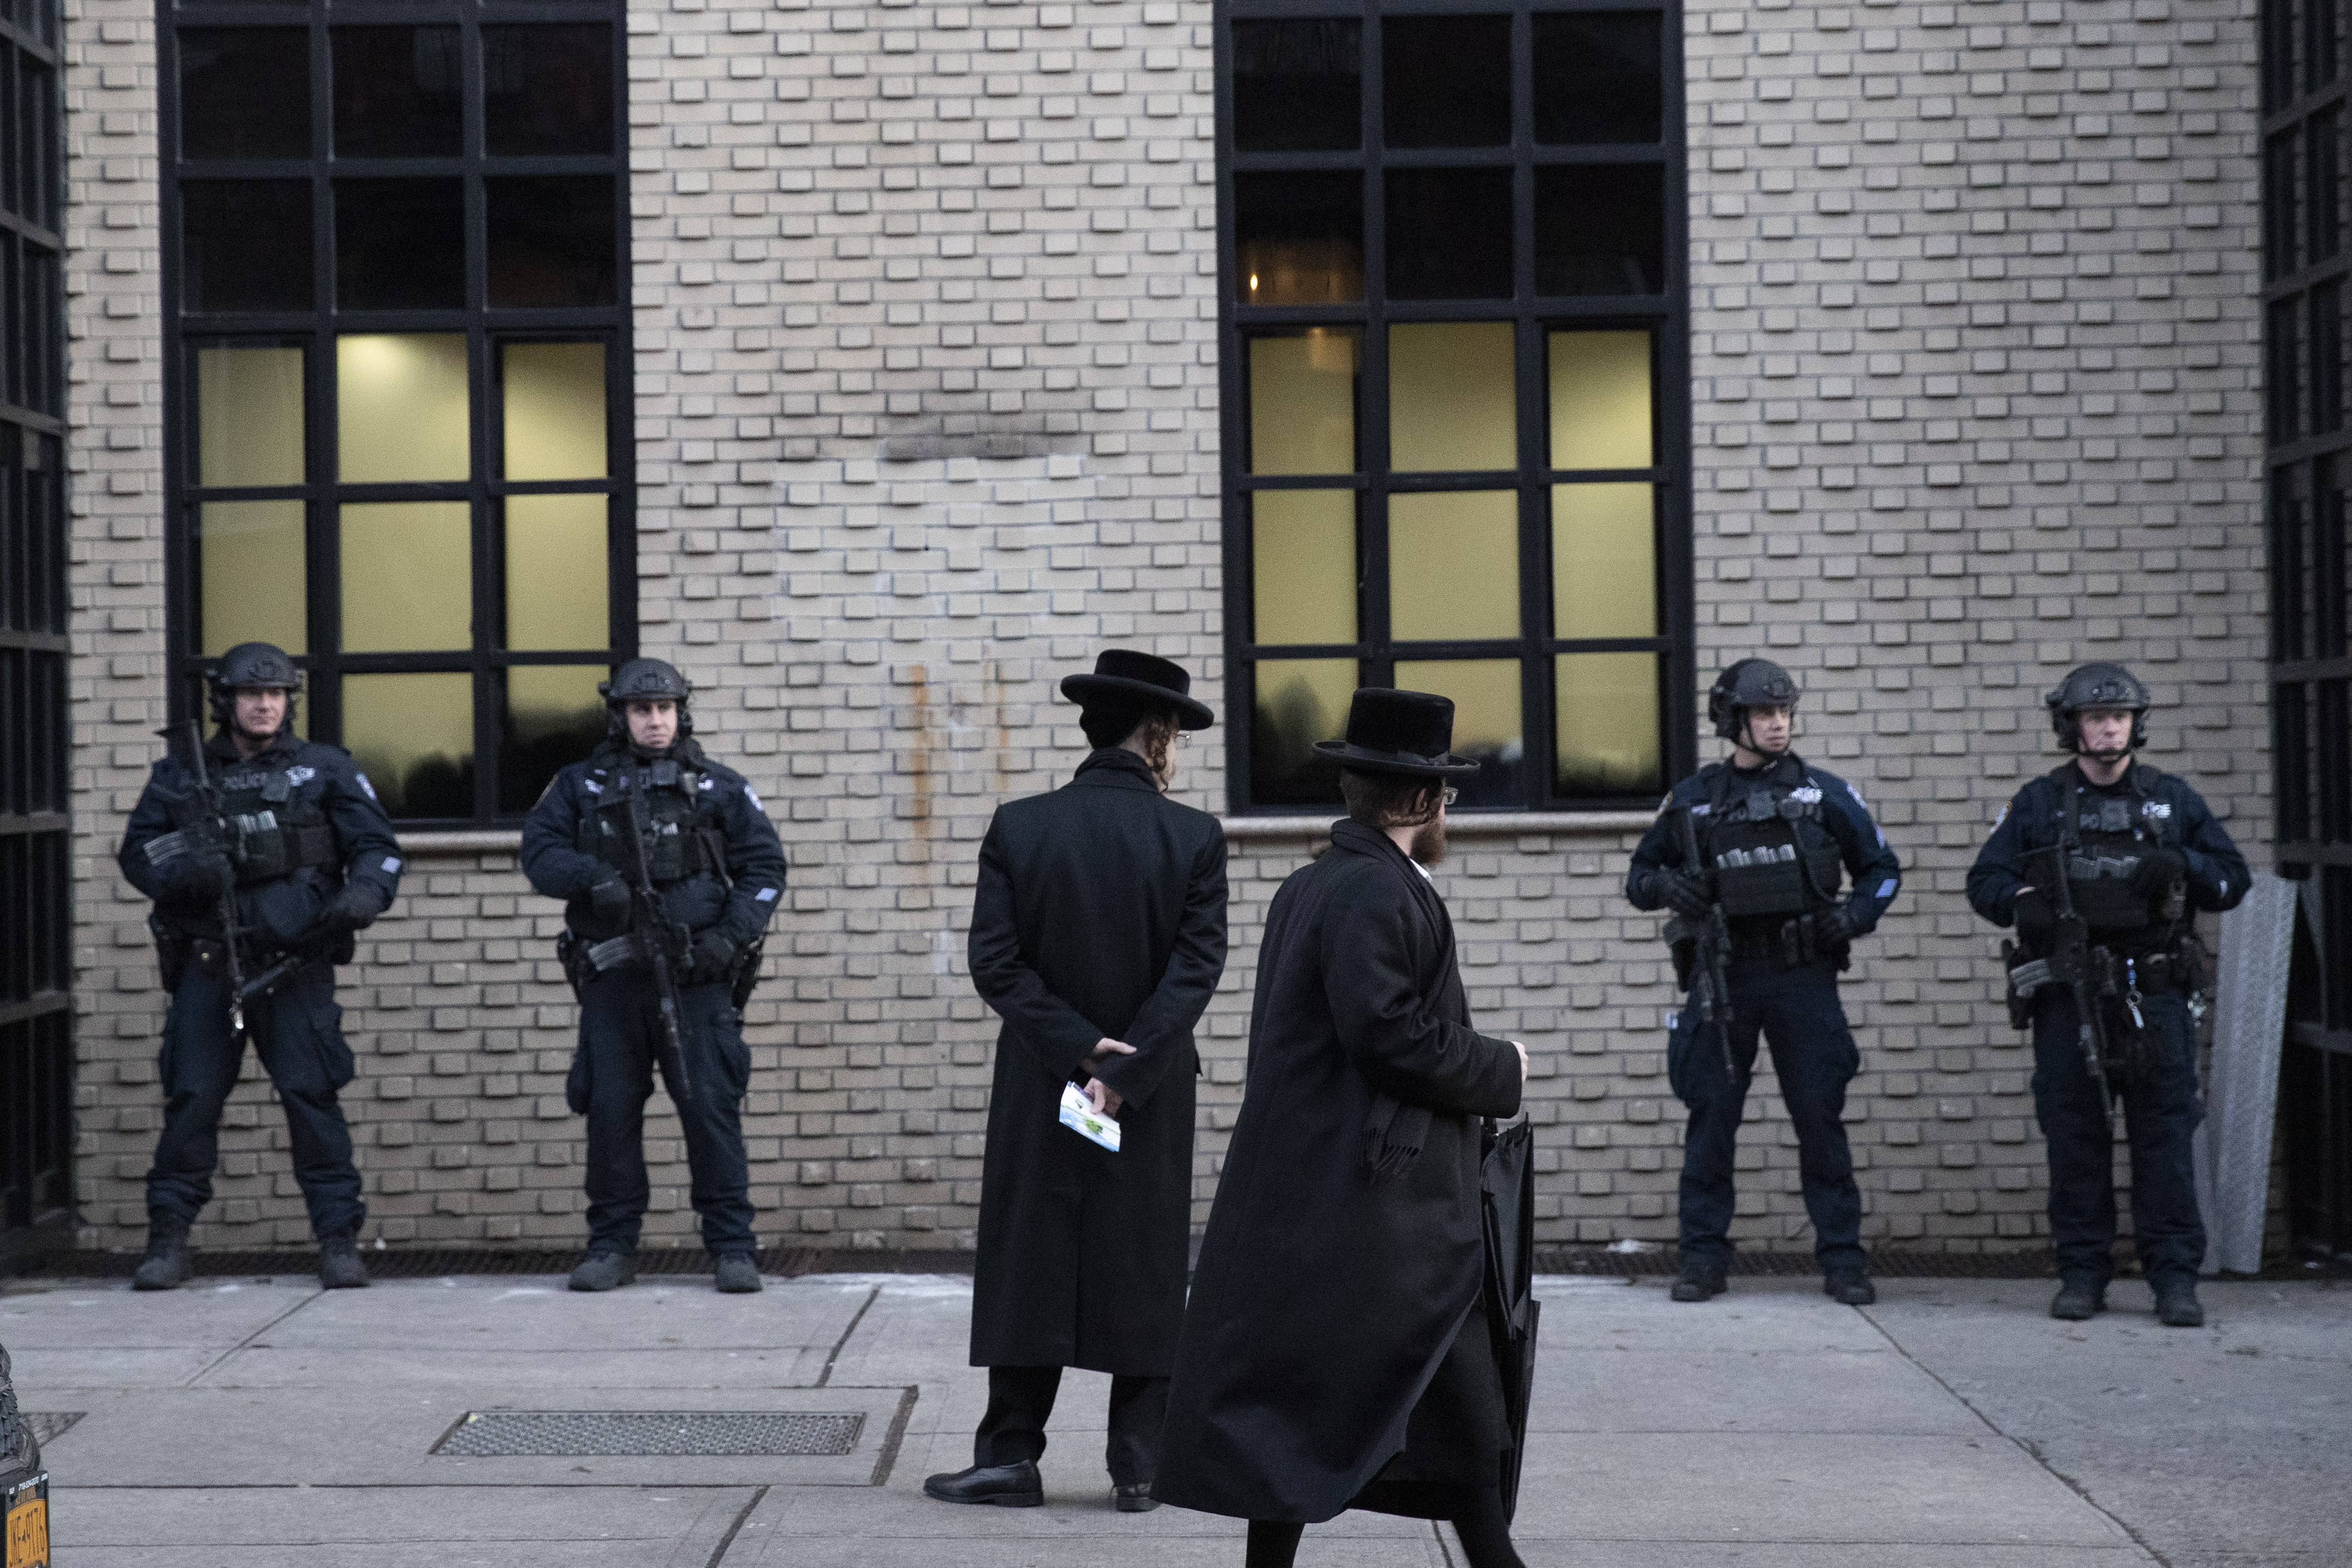 Woman charged with hate crime amid NYC anti-Semitic attacks